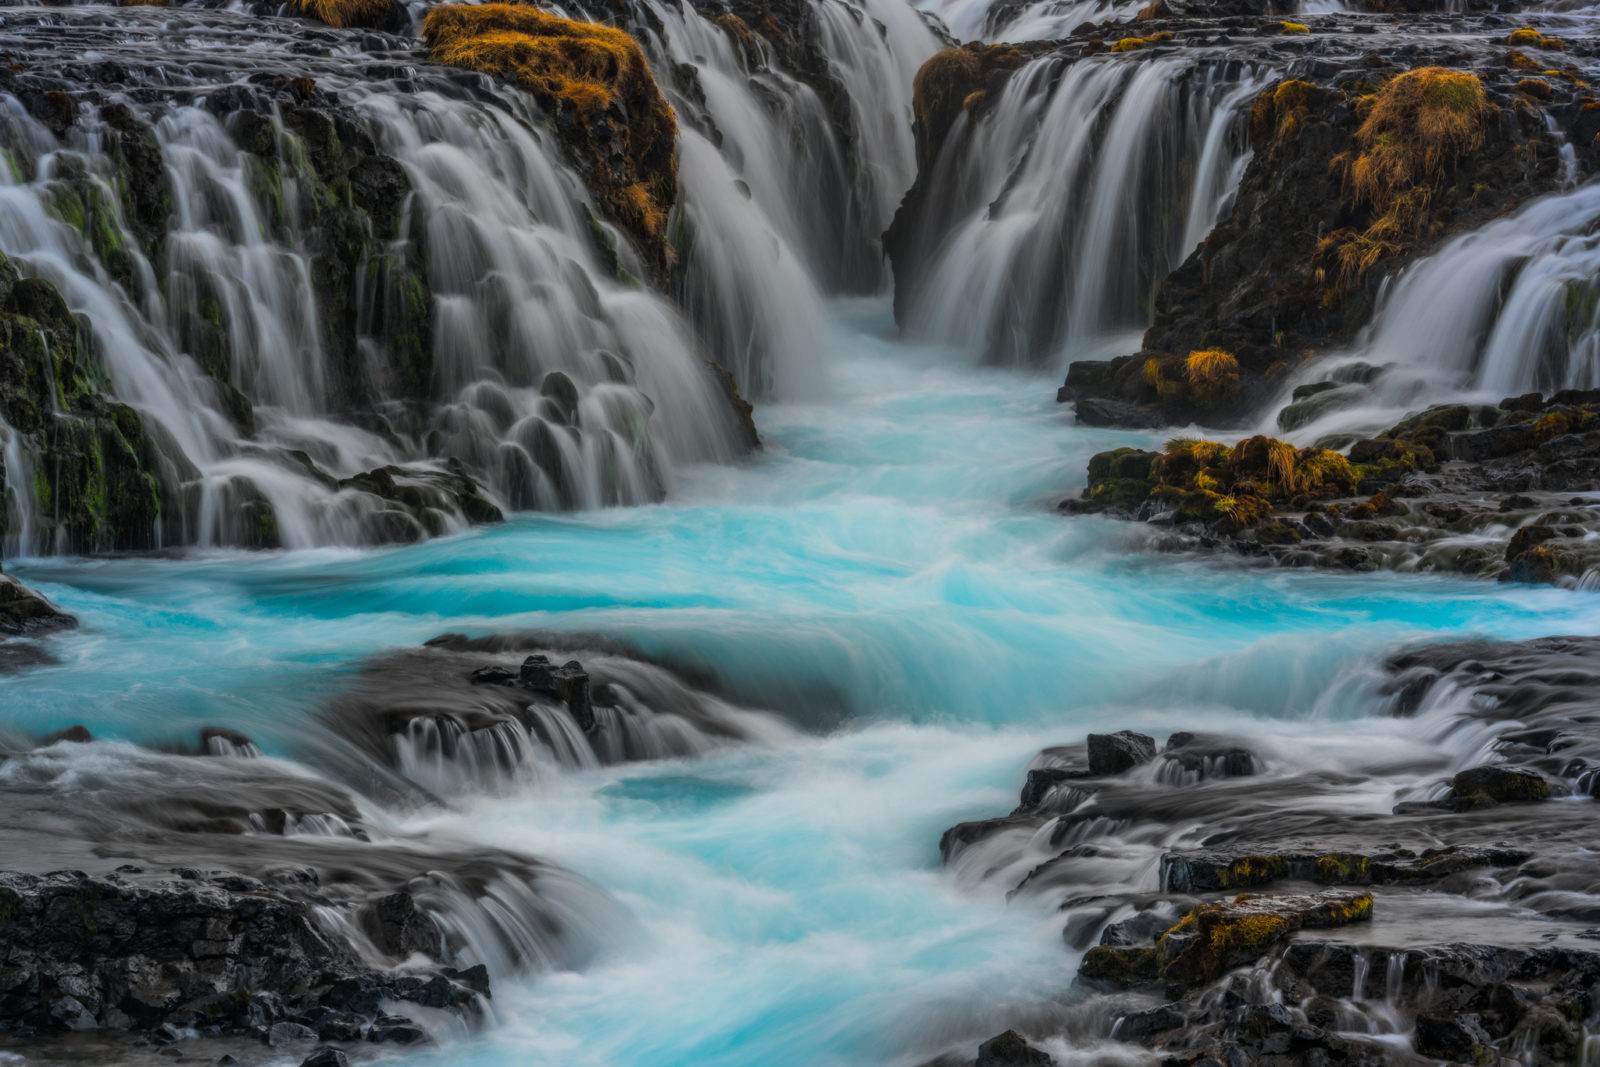 Bruarfoss Bliss